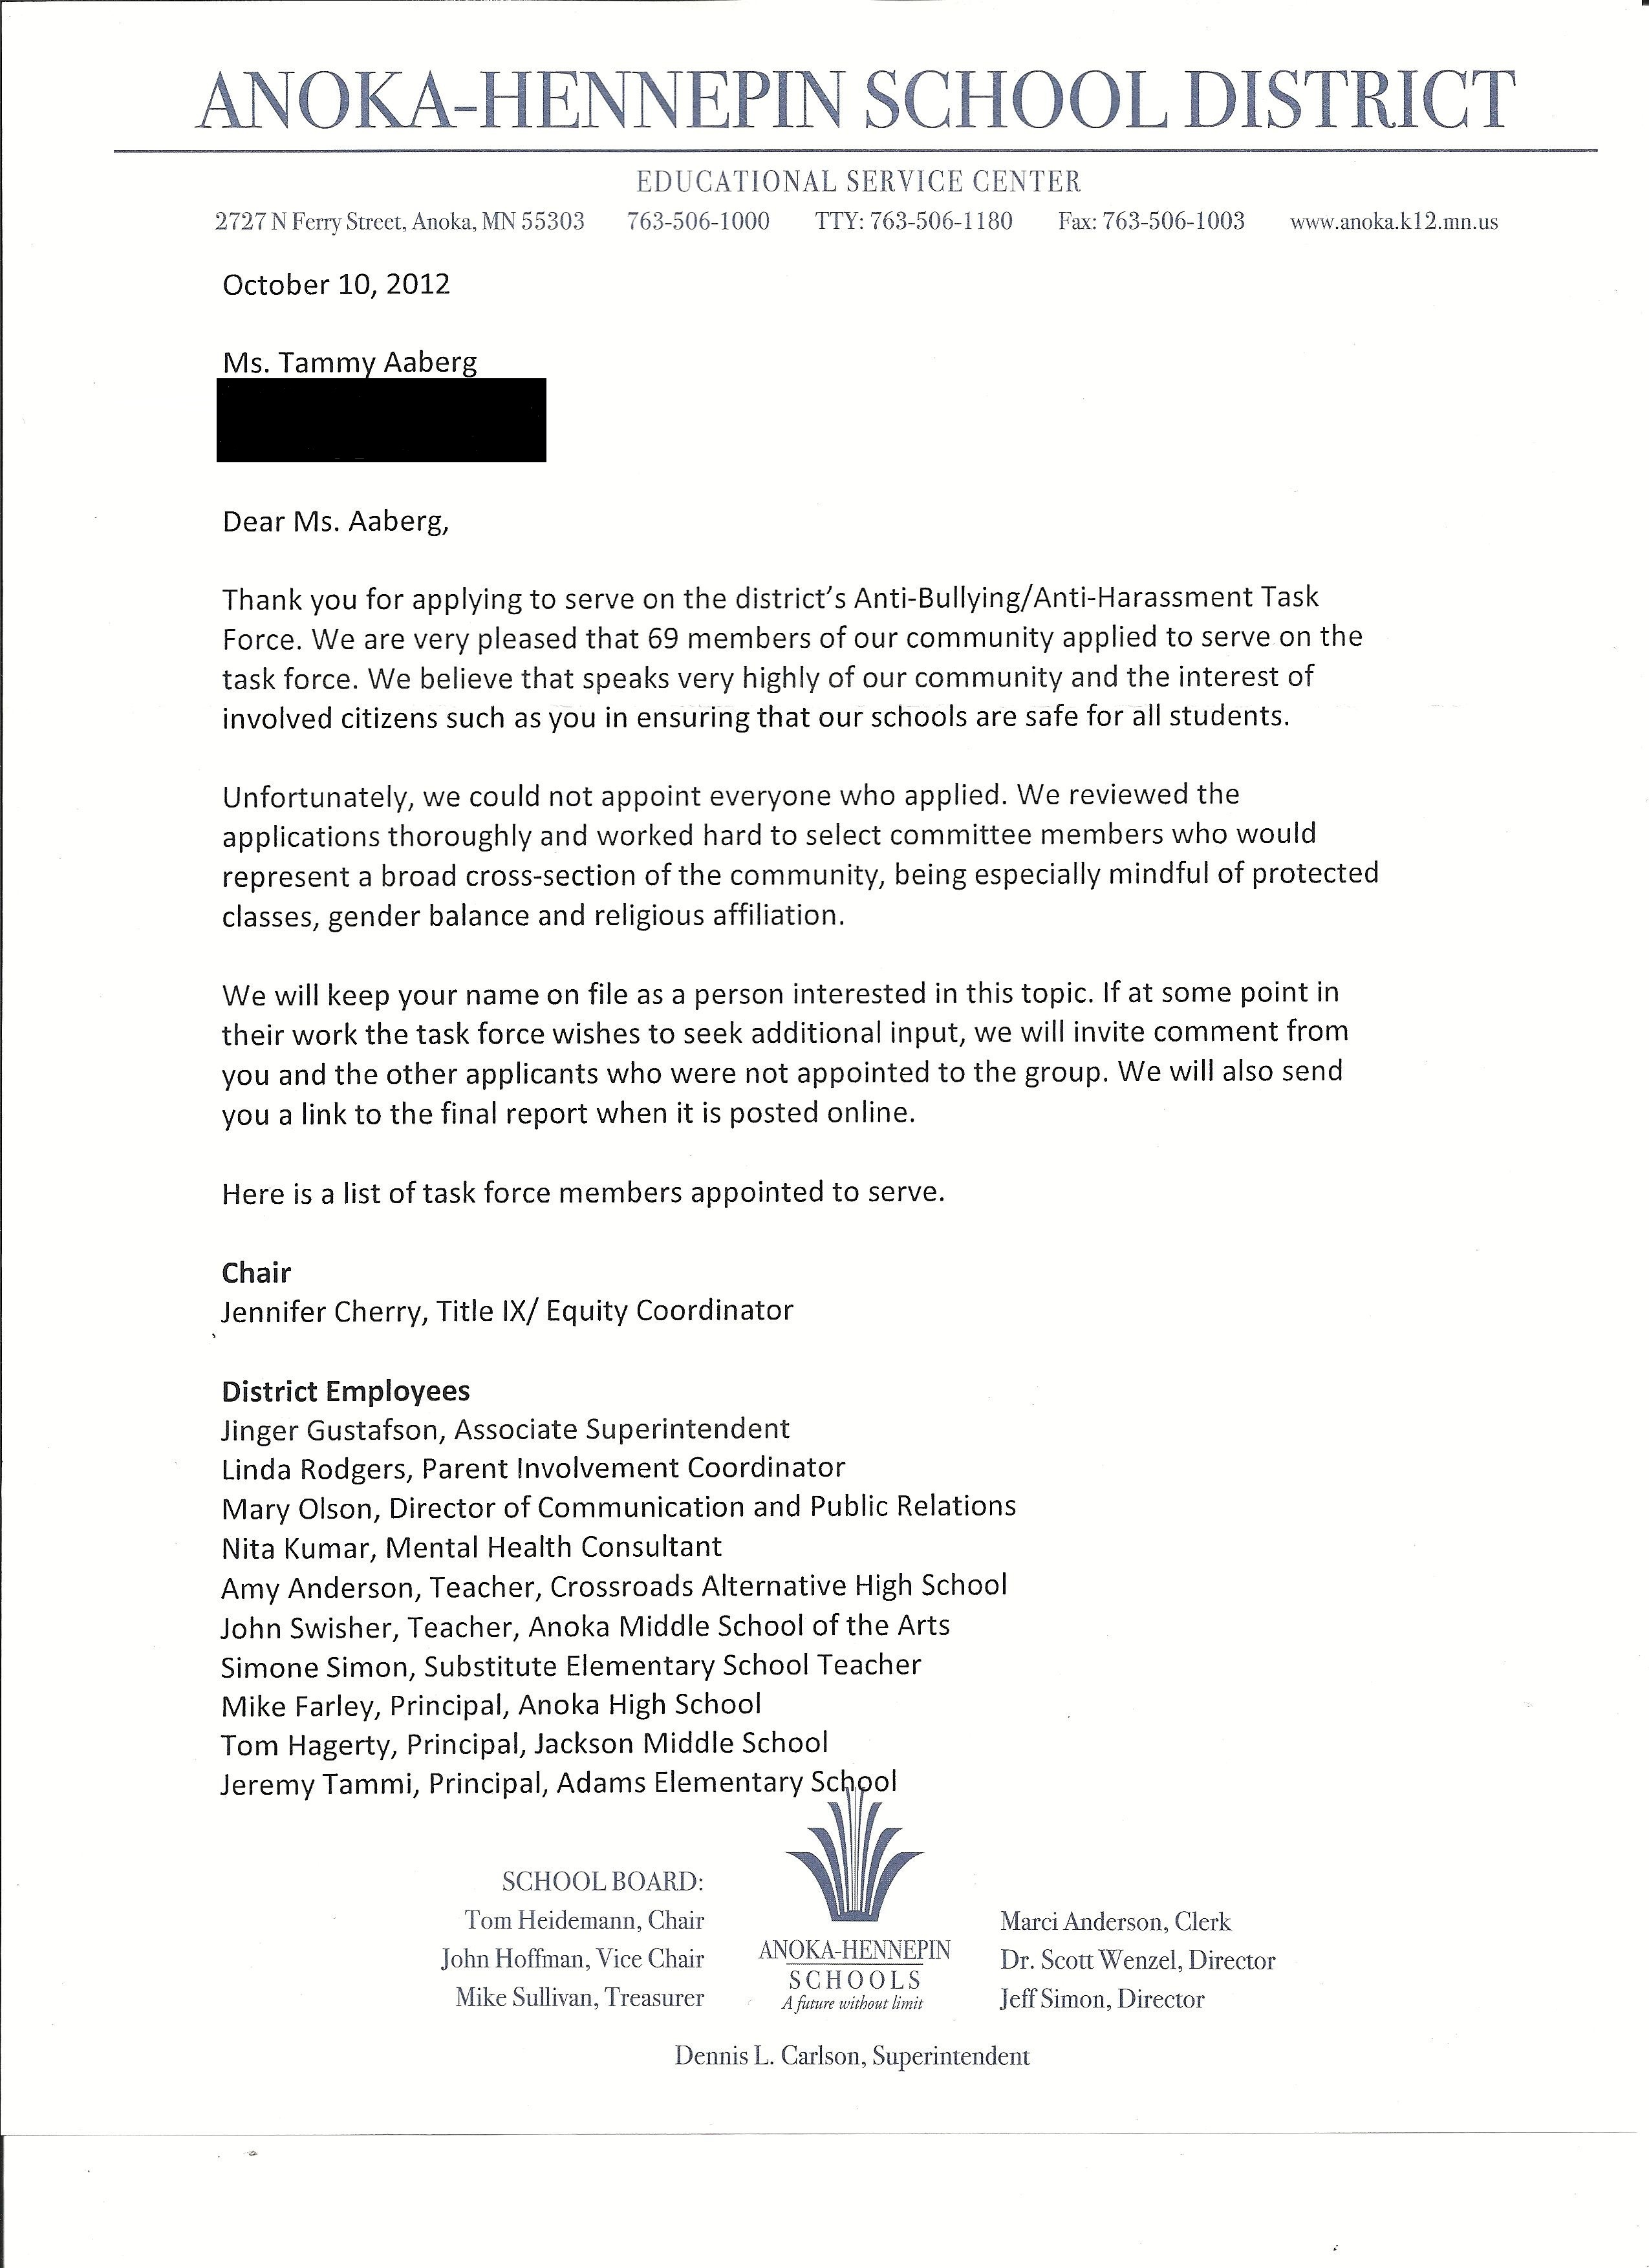 Notorious MN School District Sent This Rejection Letter to Mom of Gay Suicide Victim